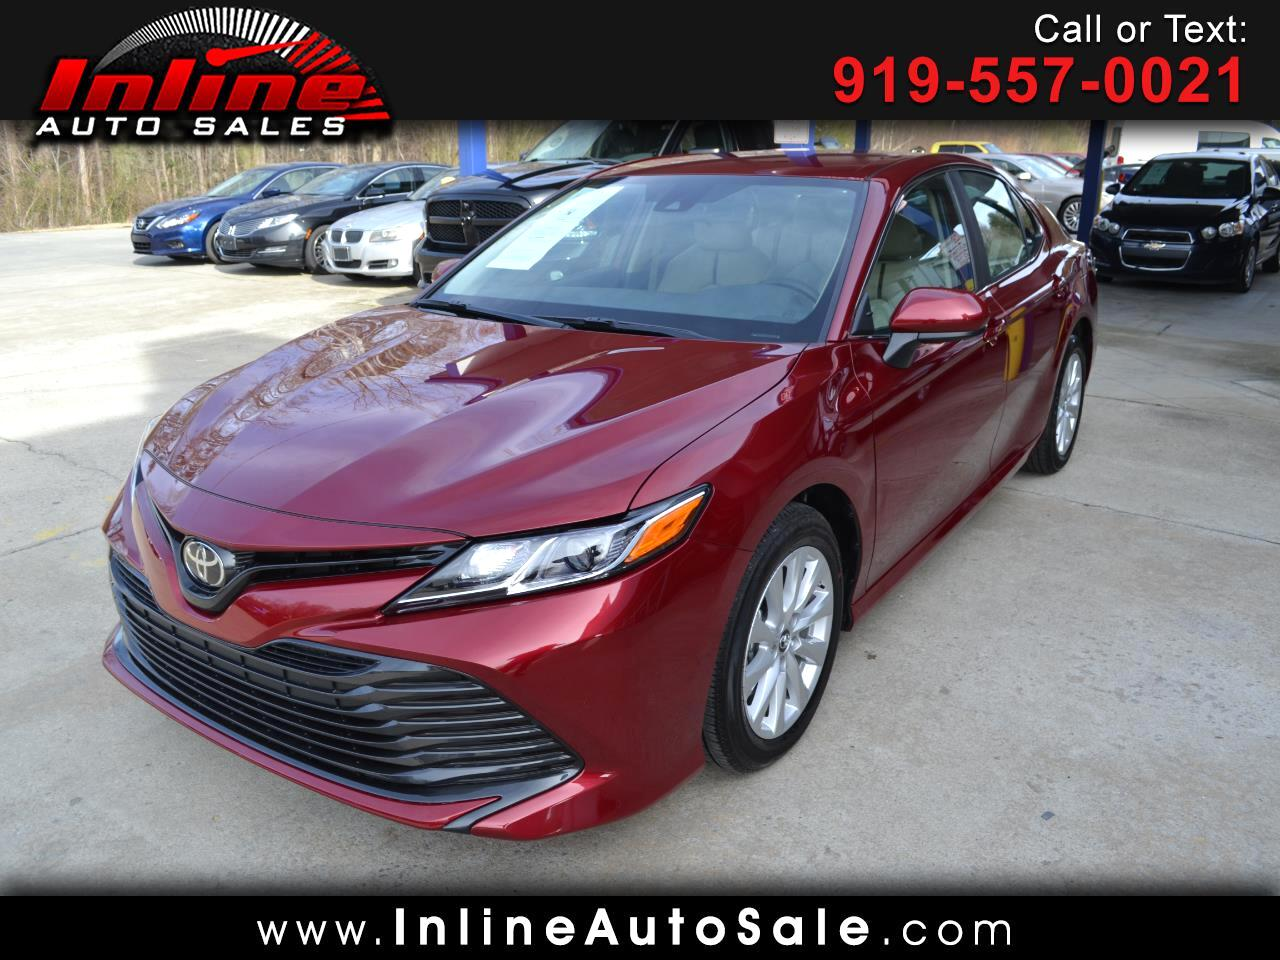 2019 Toyota Camry 2014.5 4dr Sdn I4 Auto LE (Natl)